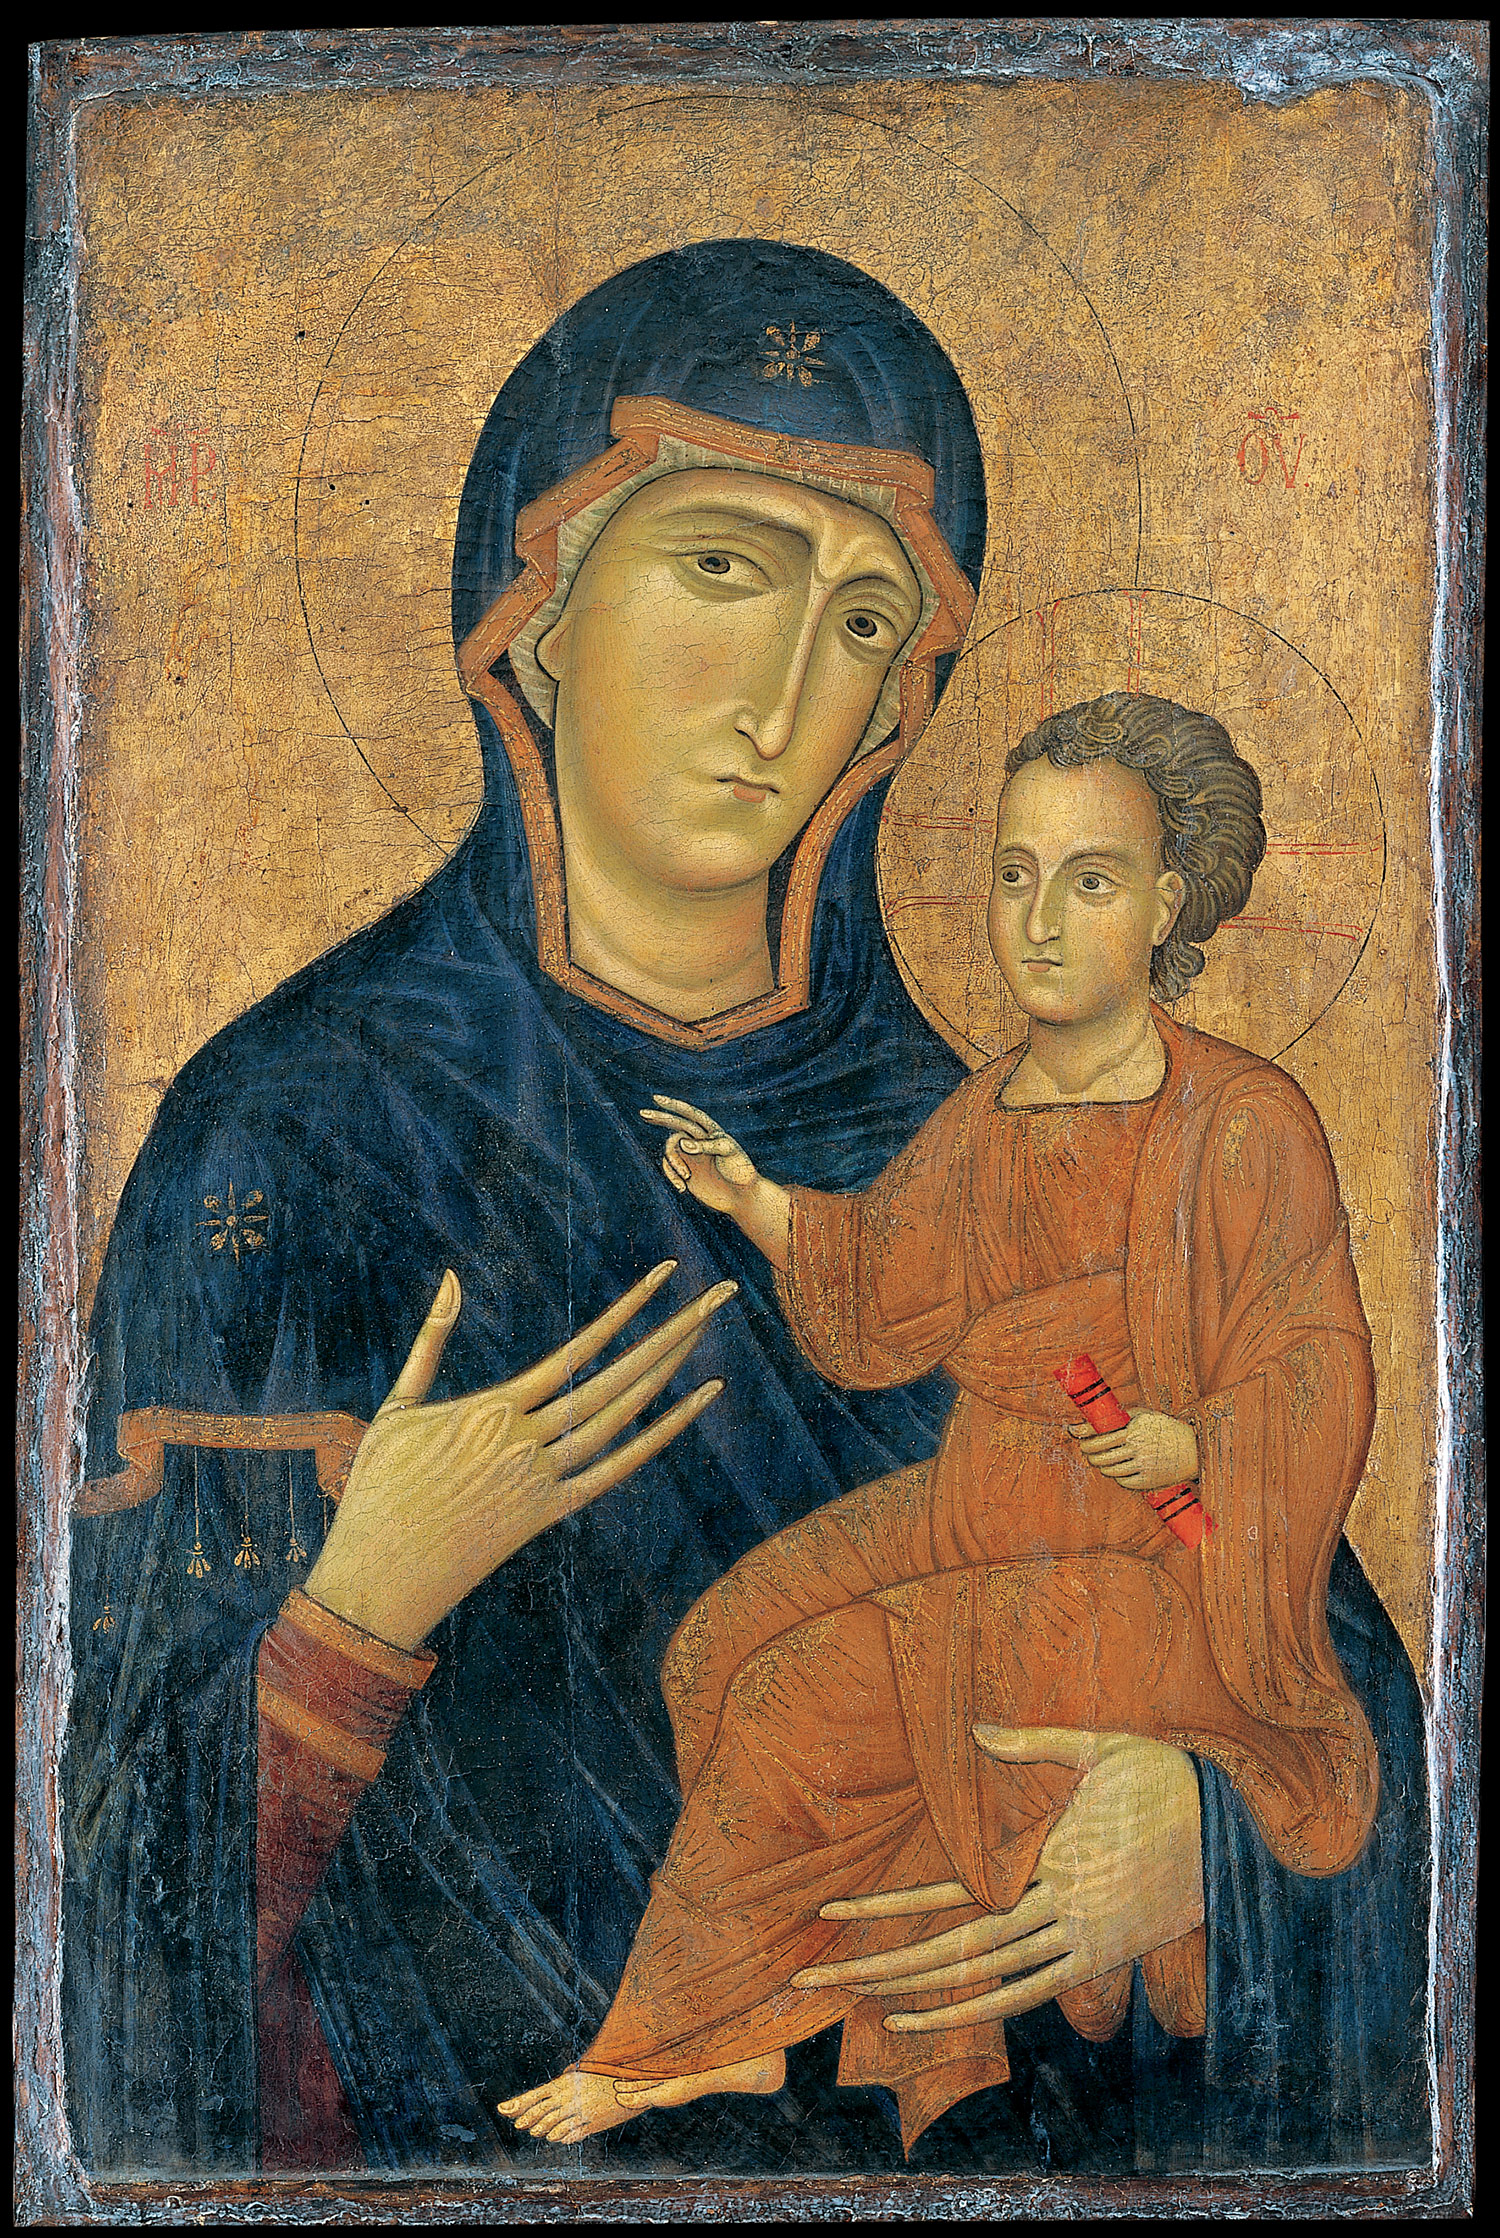 Madonna and Child by Berlinghiero, Lucca, 1228x1236